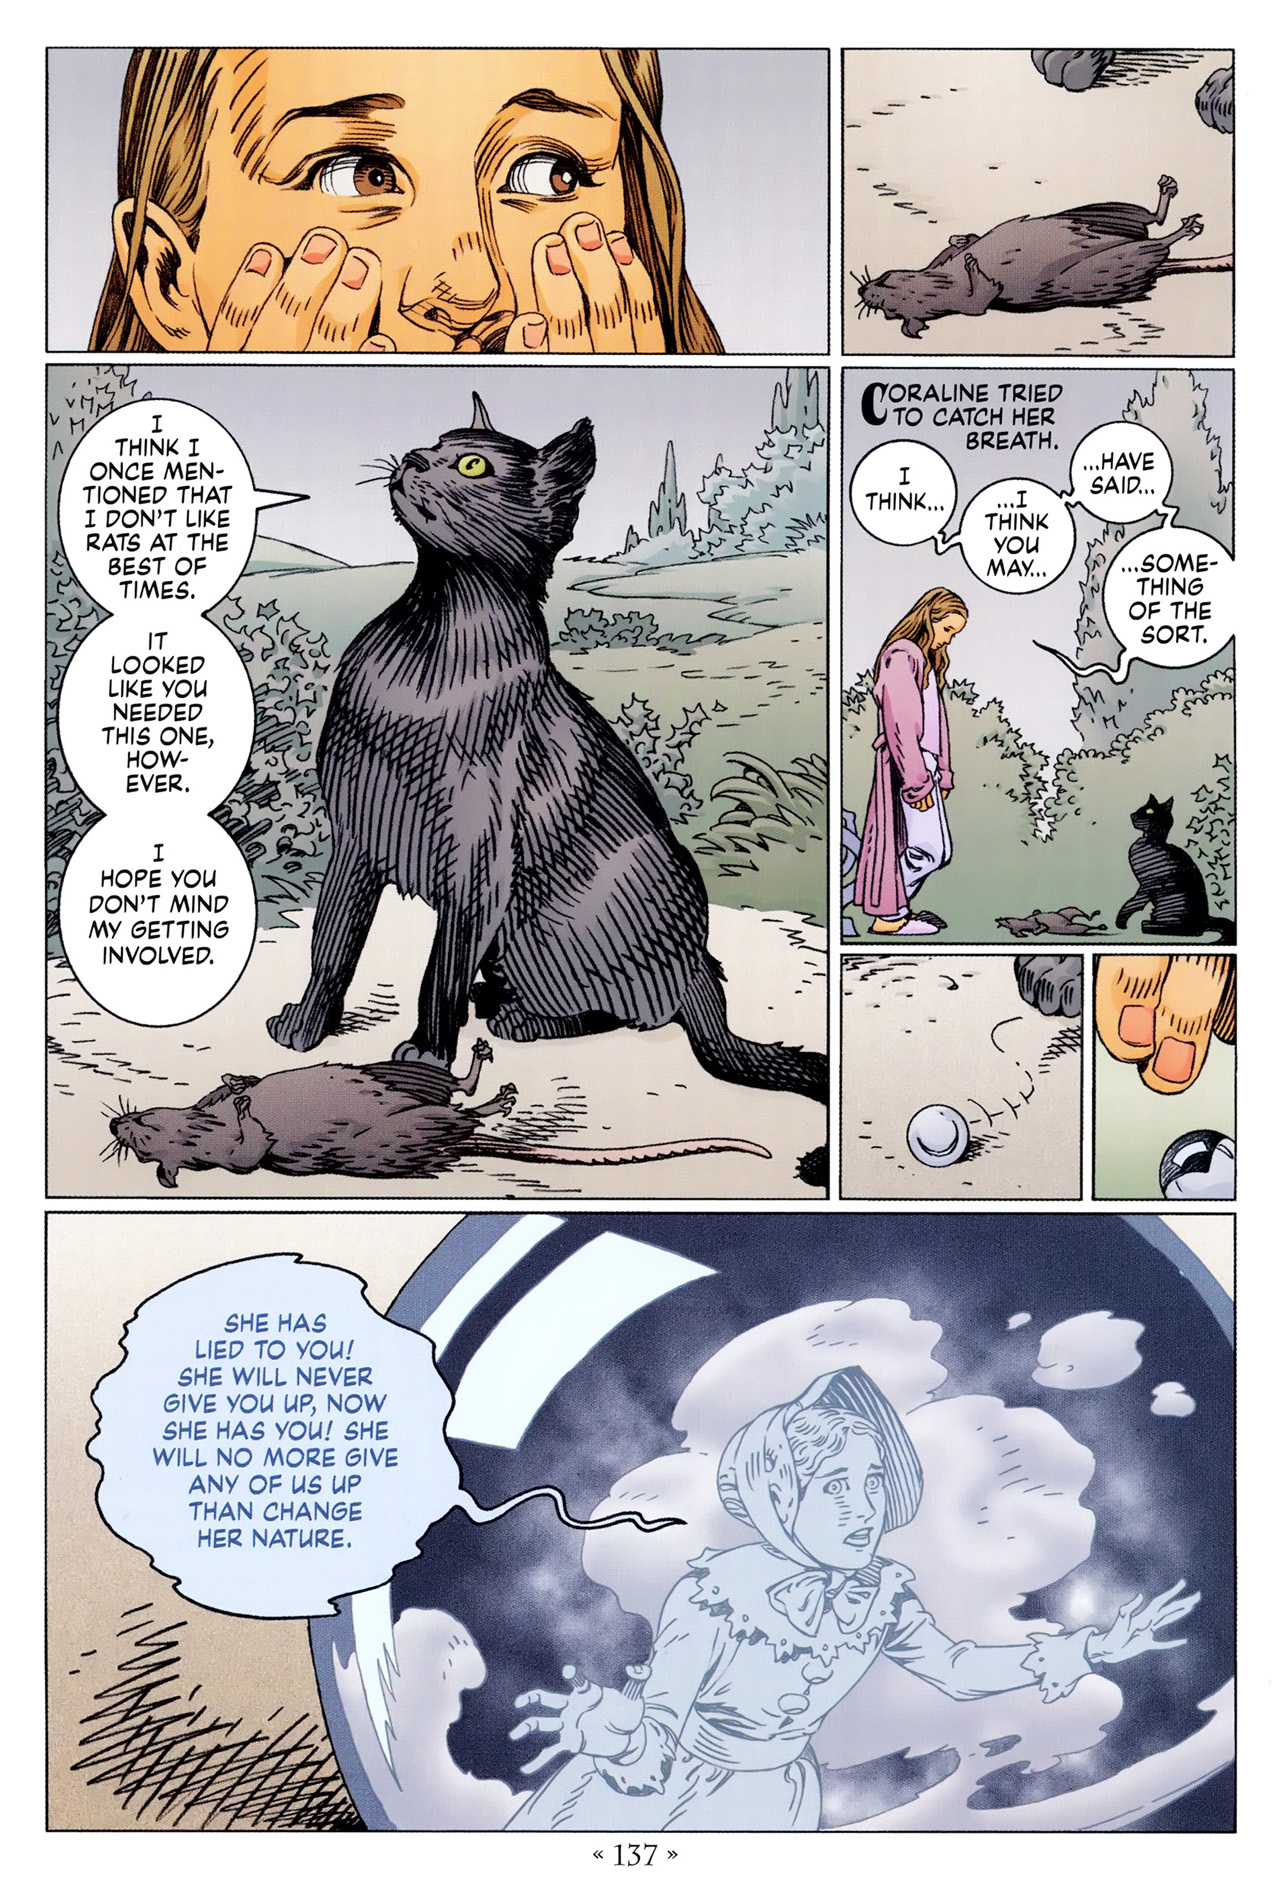 Read online Coraline comic -  Issue #1 - 143